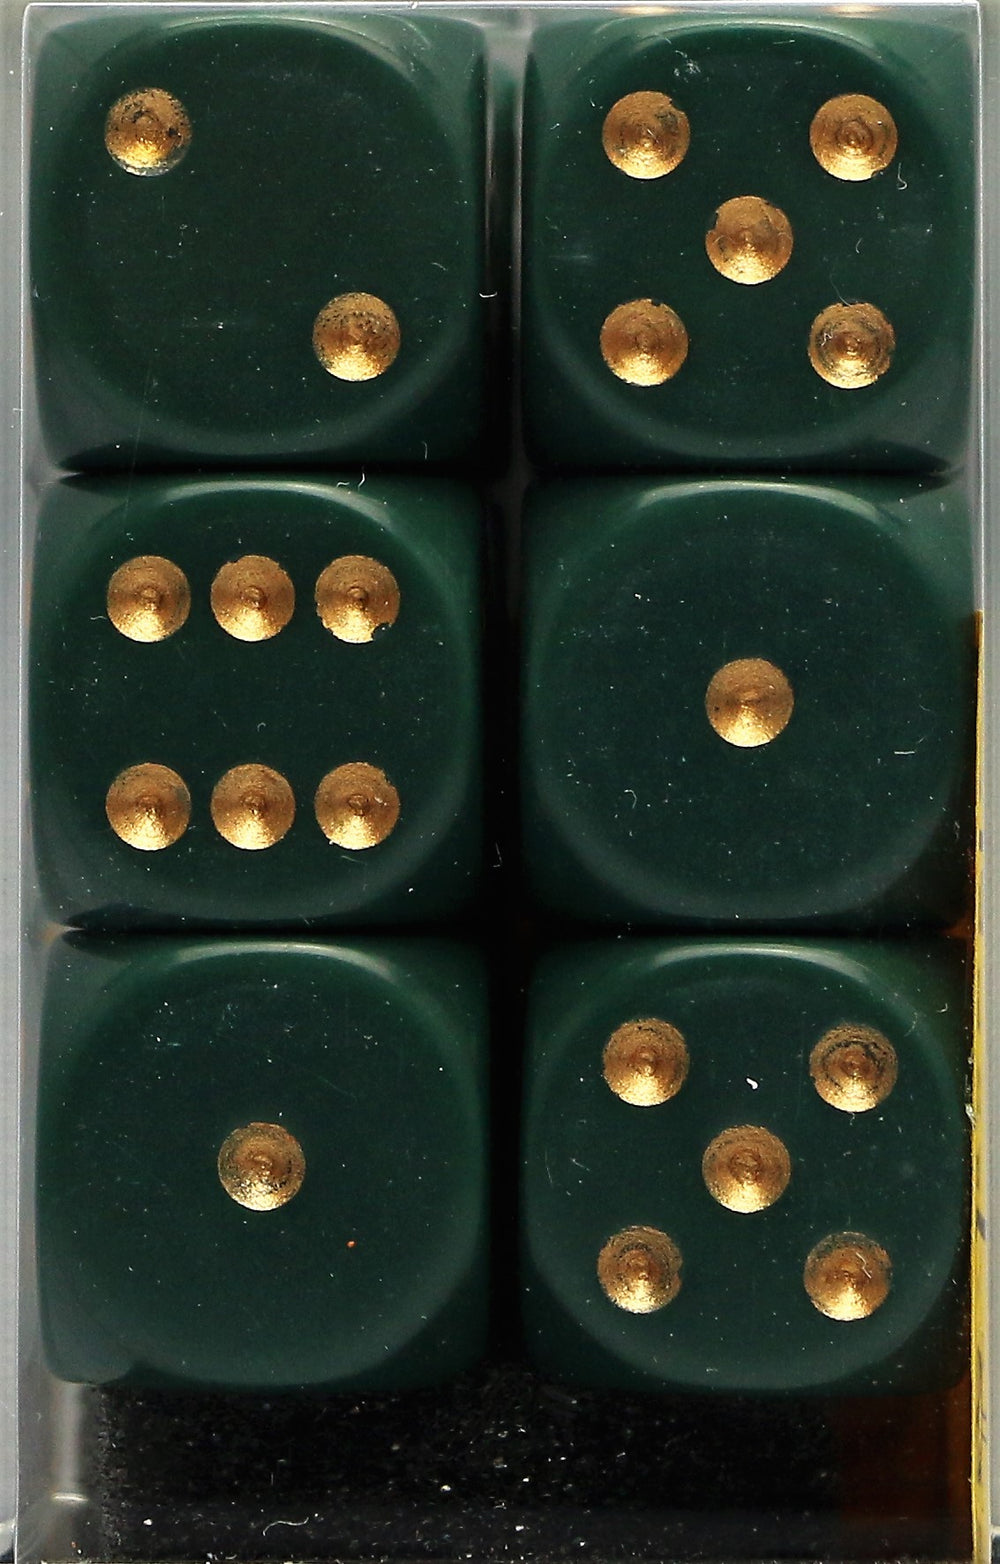 Chessex: 16mm D6 (12 Dice): Opaque: Dusty Green / Gold (25615)